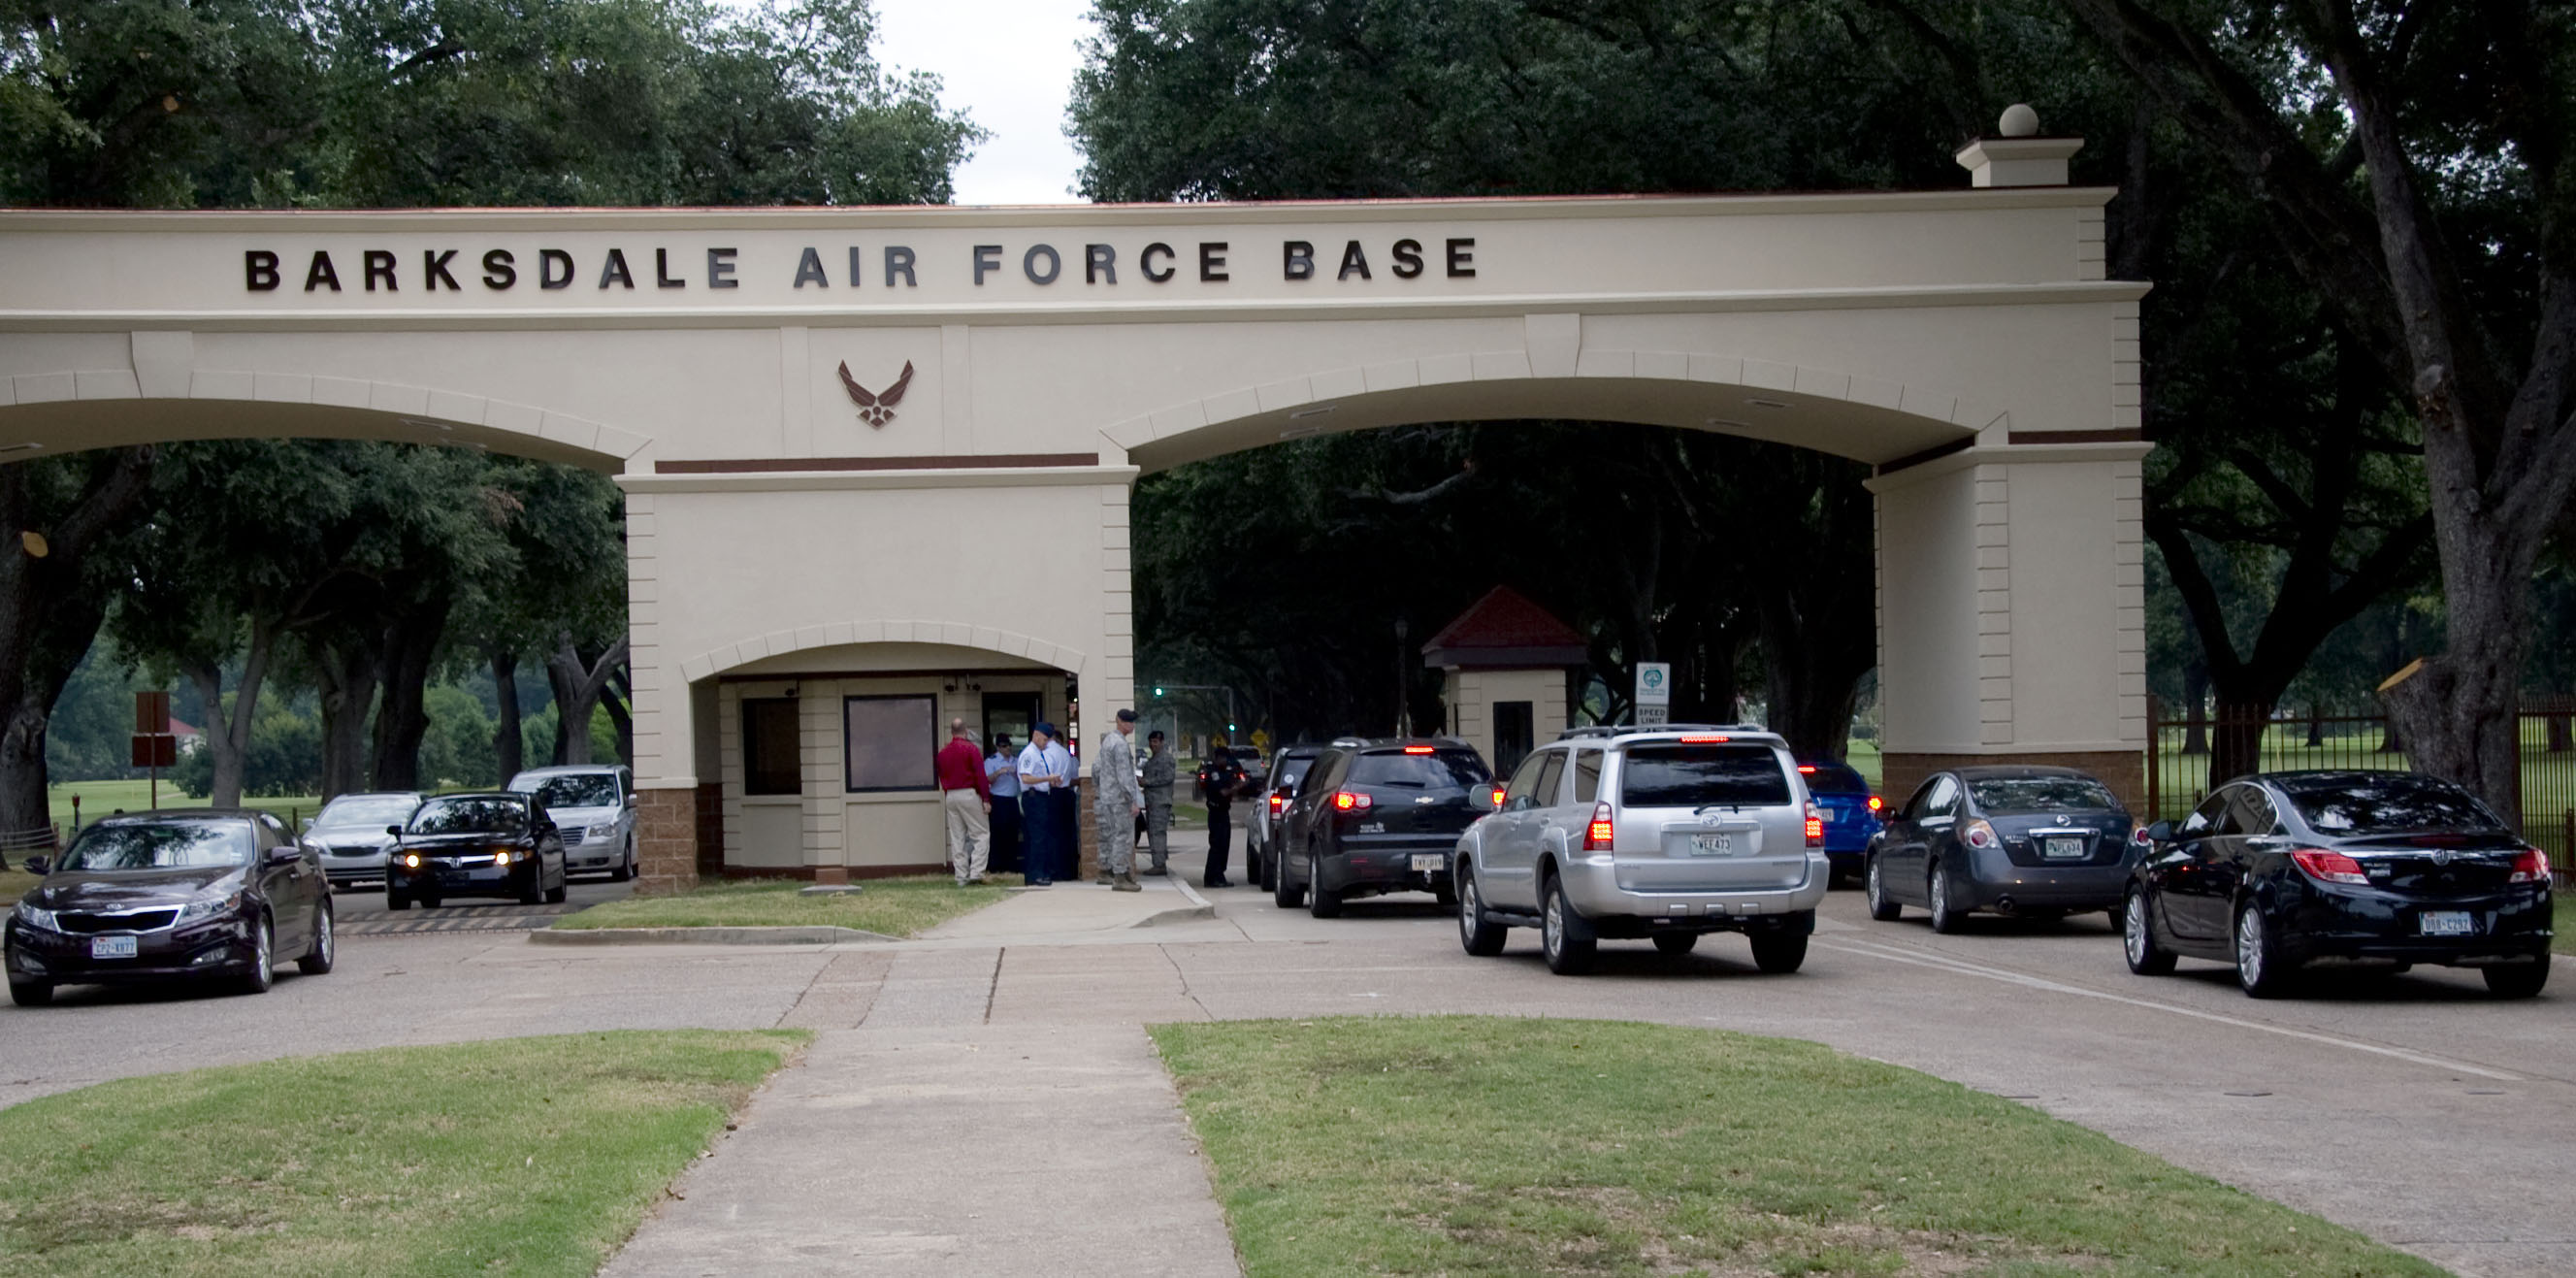 barksdale afb senior dating site The barksdale afb guide is an unofficial publication authorized by ar 360-81 editorial content is prepared, edited and provided by the public affairs office of barksdale afb all photos are provided by the public affairs office unless stated otherwise.